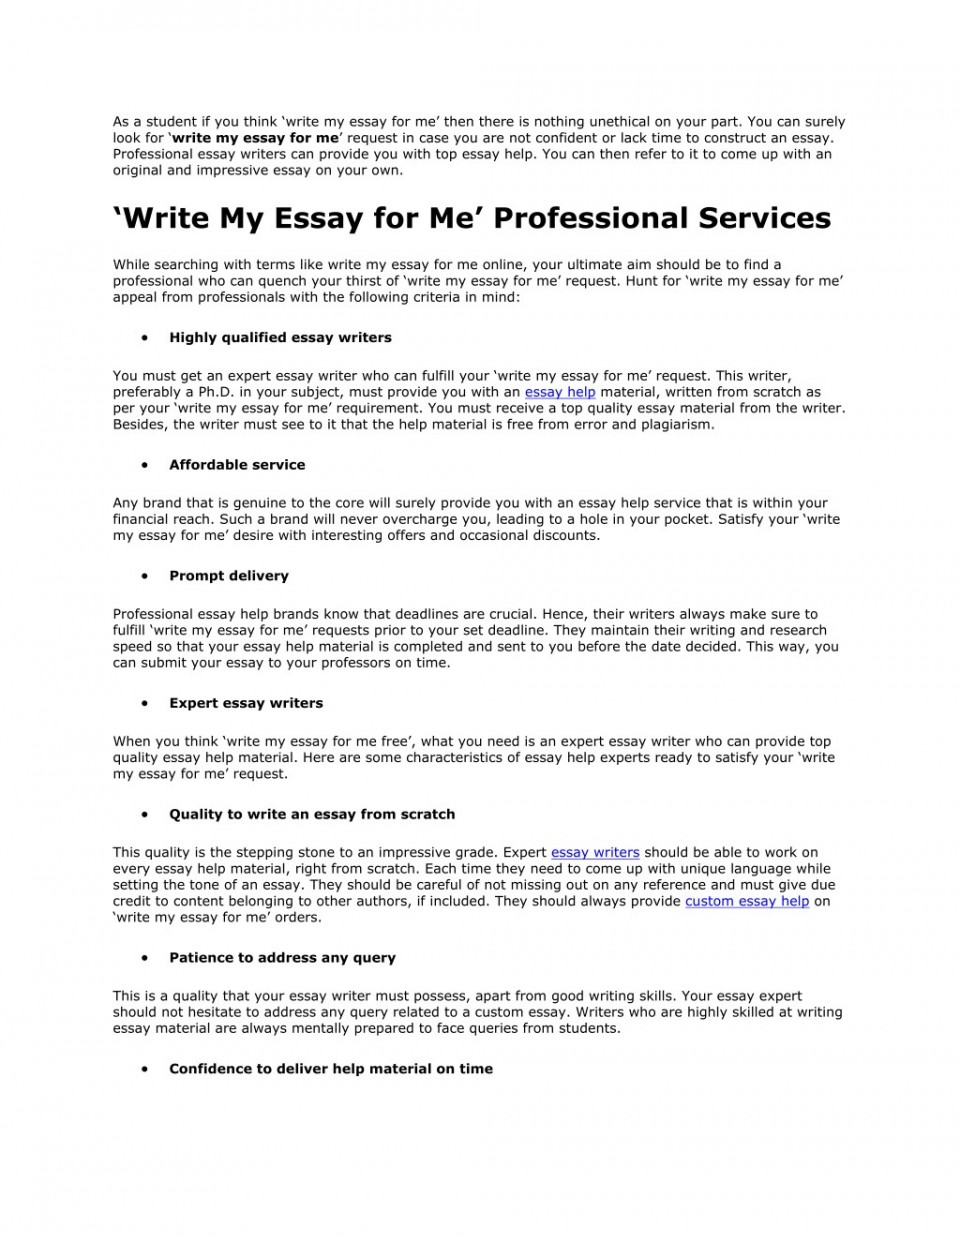 006 Essay Example Write For Me As Student If You Think My Amazing Generator Free Online 960